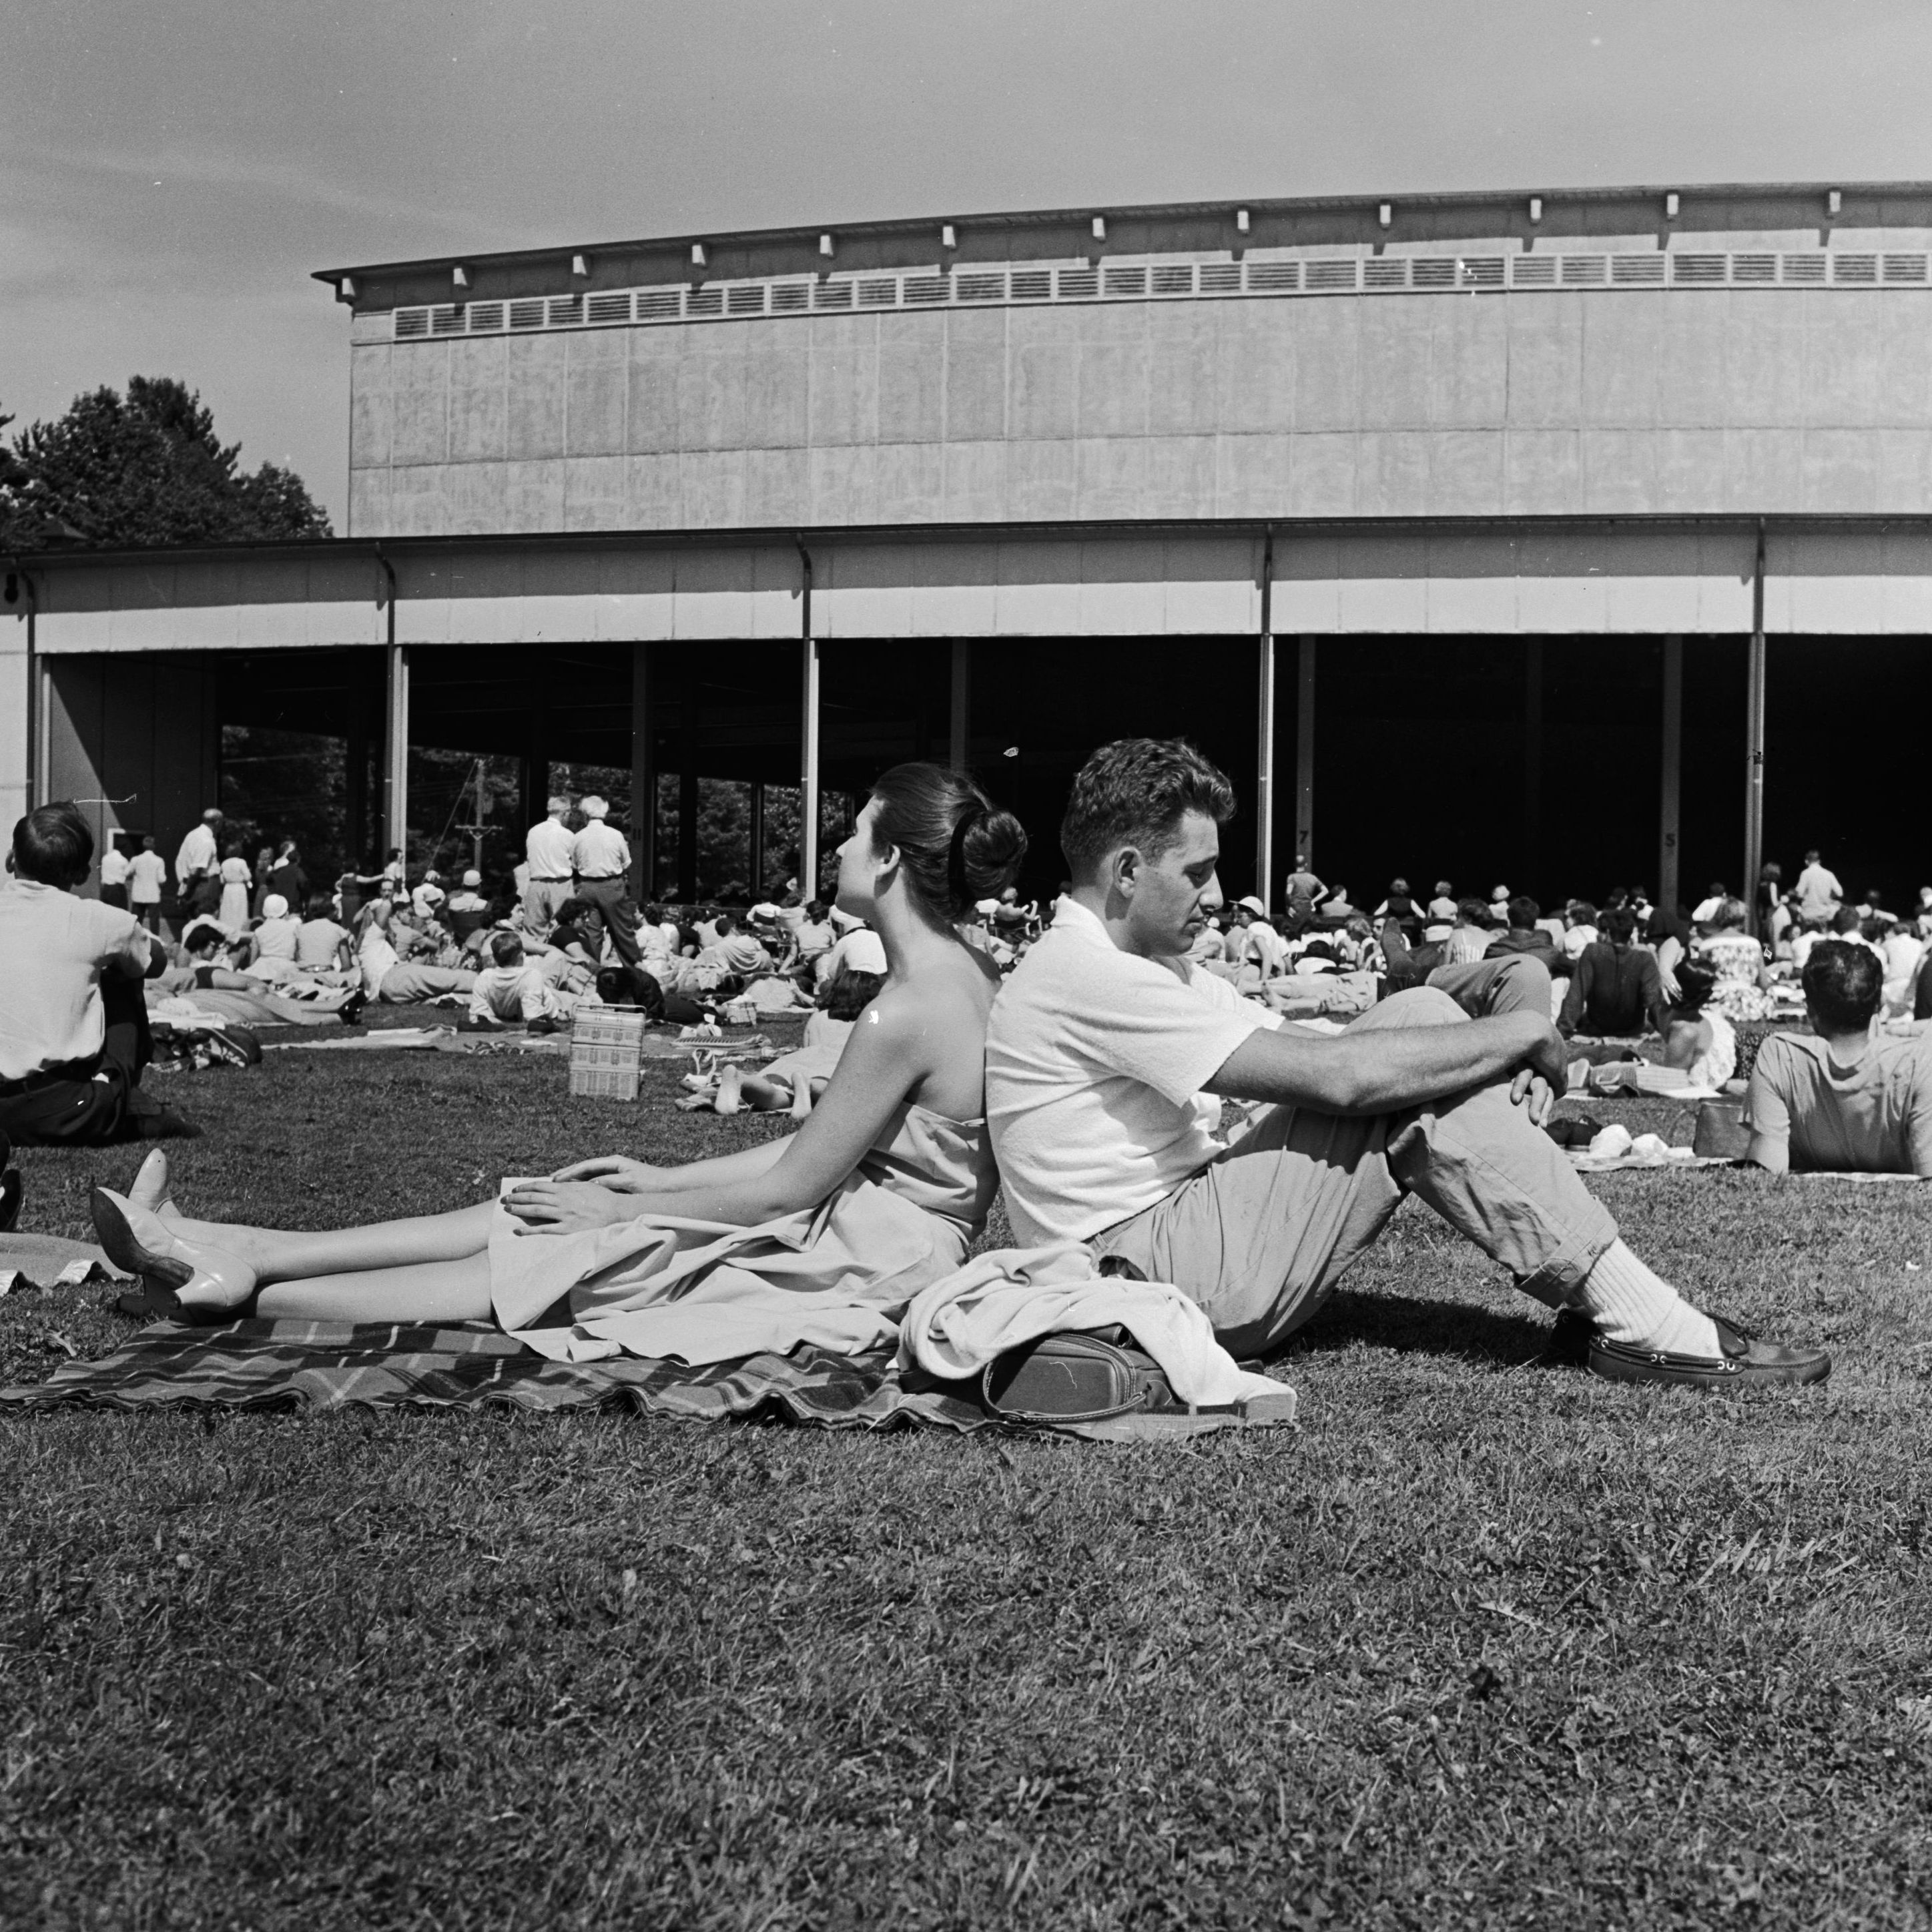 A couple seated on Tanglewood's lawn listens to the Boston Symphony Orchestra play Brahms, circa 1960.